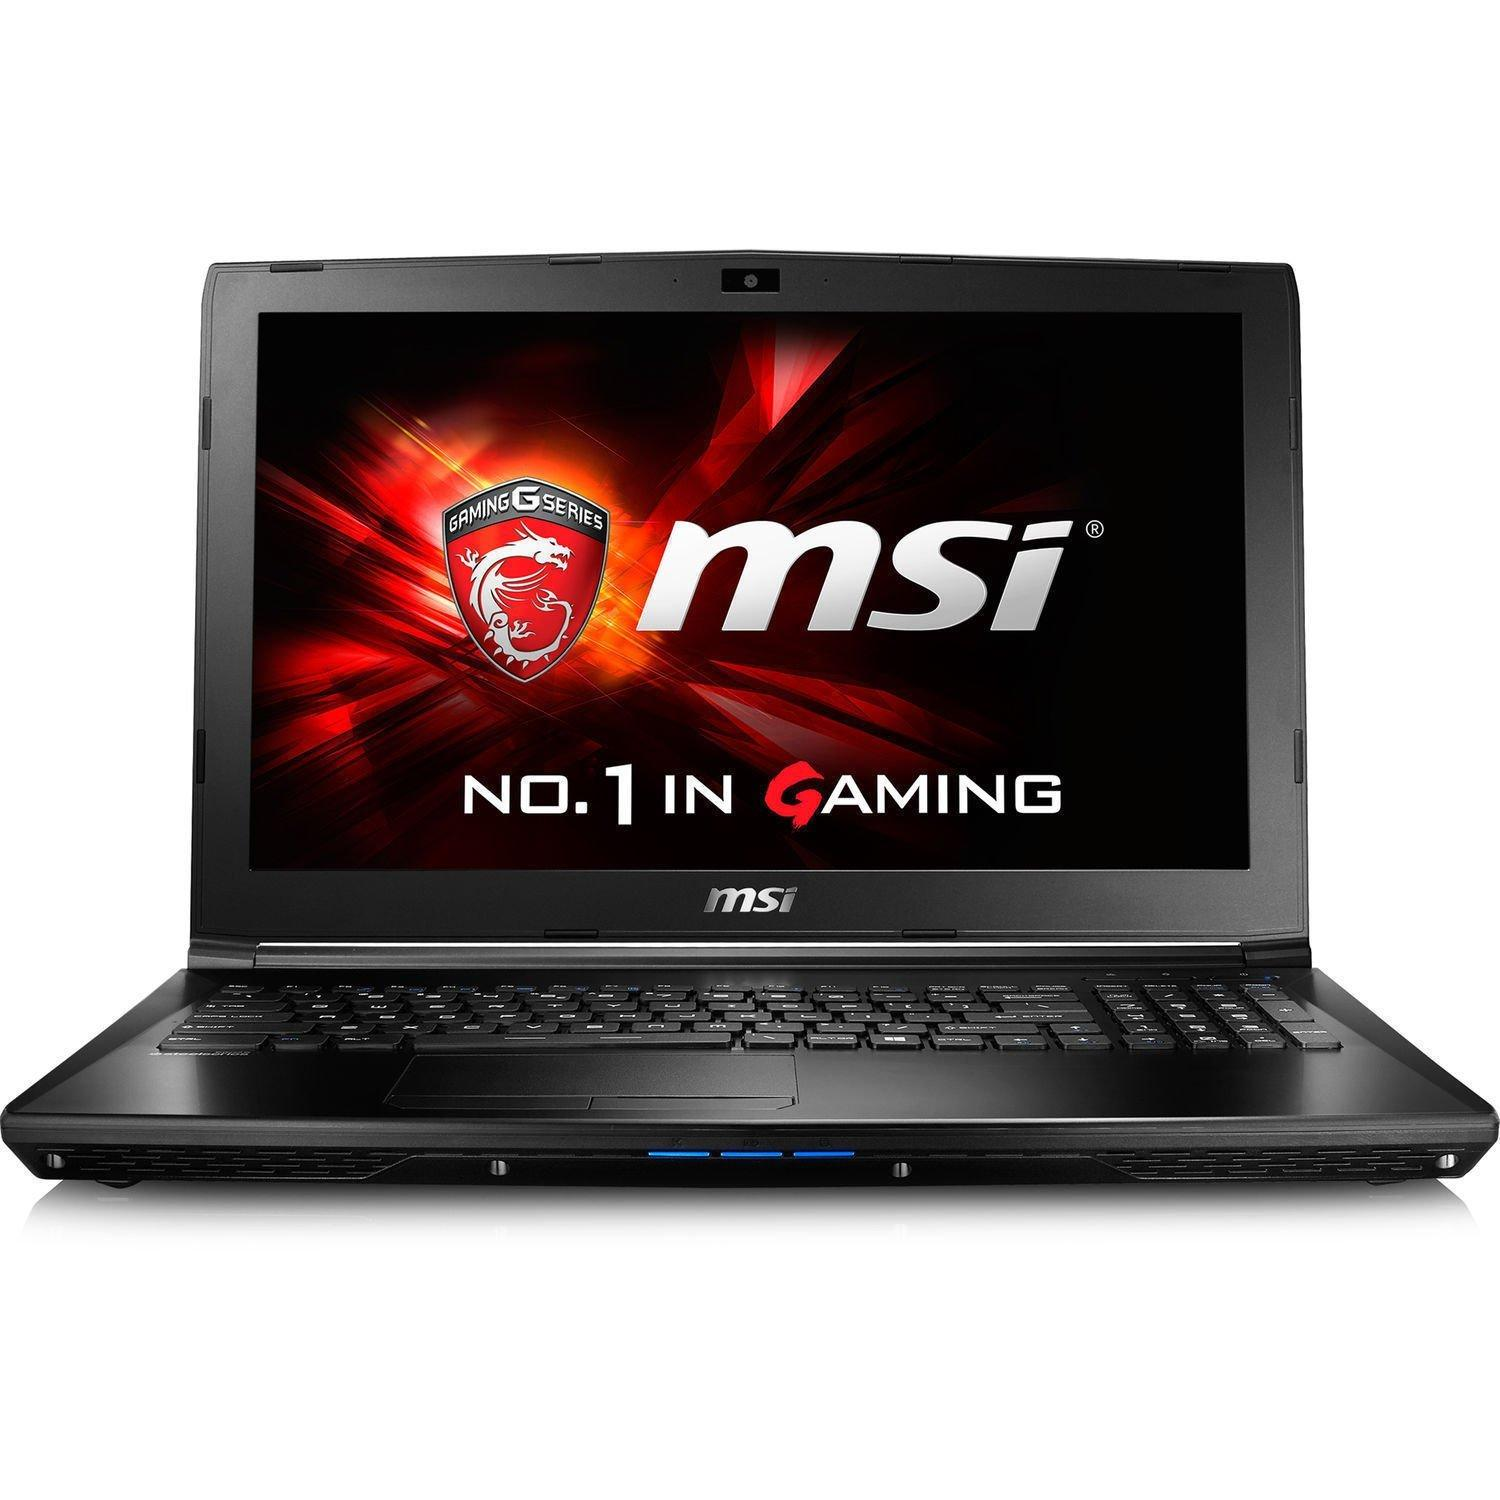 MSI GL72 6QD i7-6700HQ/ 8GB/ HDD 1TB/ VGA 2GB NVIDIA GeForce GTX 960M/ 17.3 inch Full HD 1920x1080)